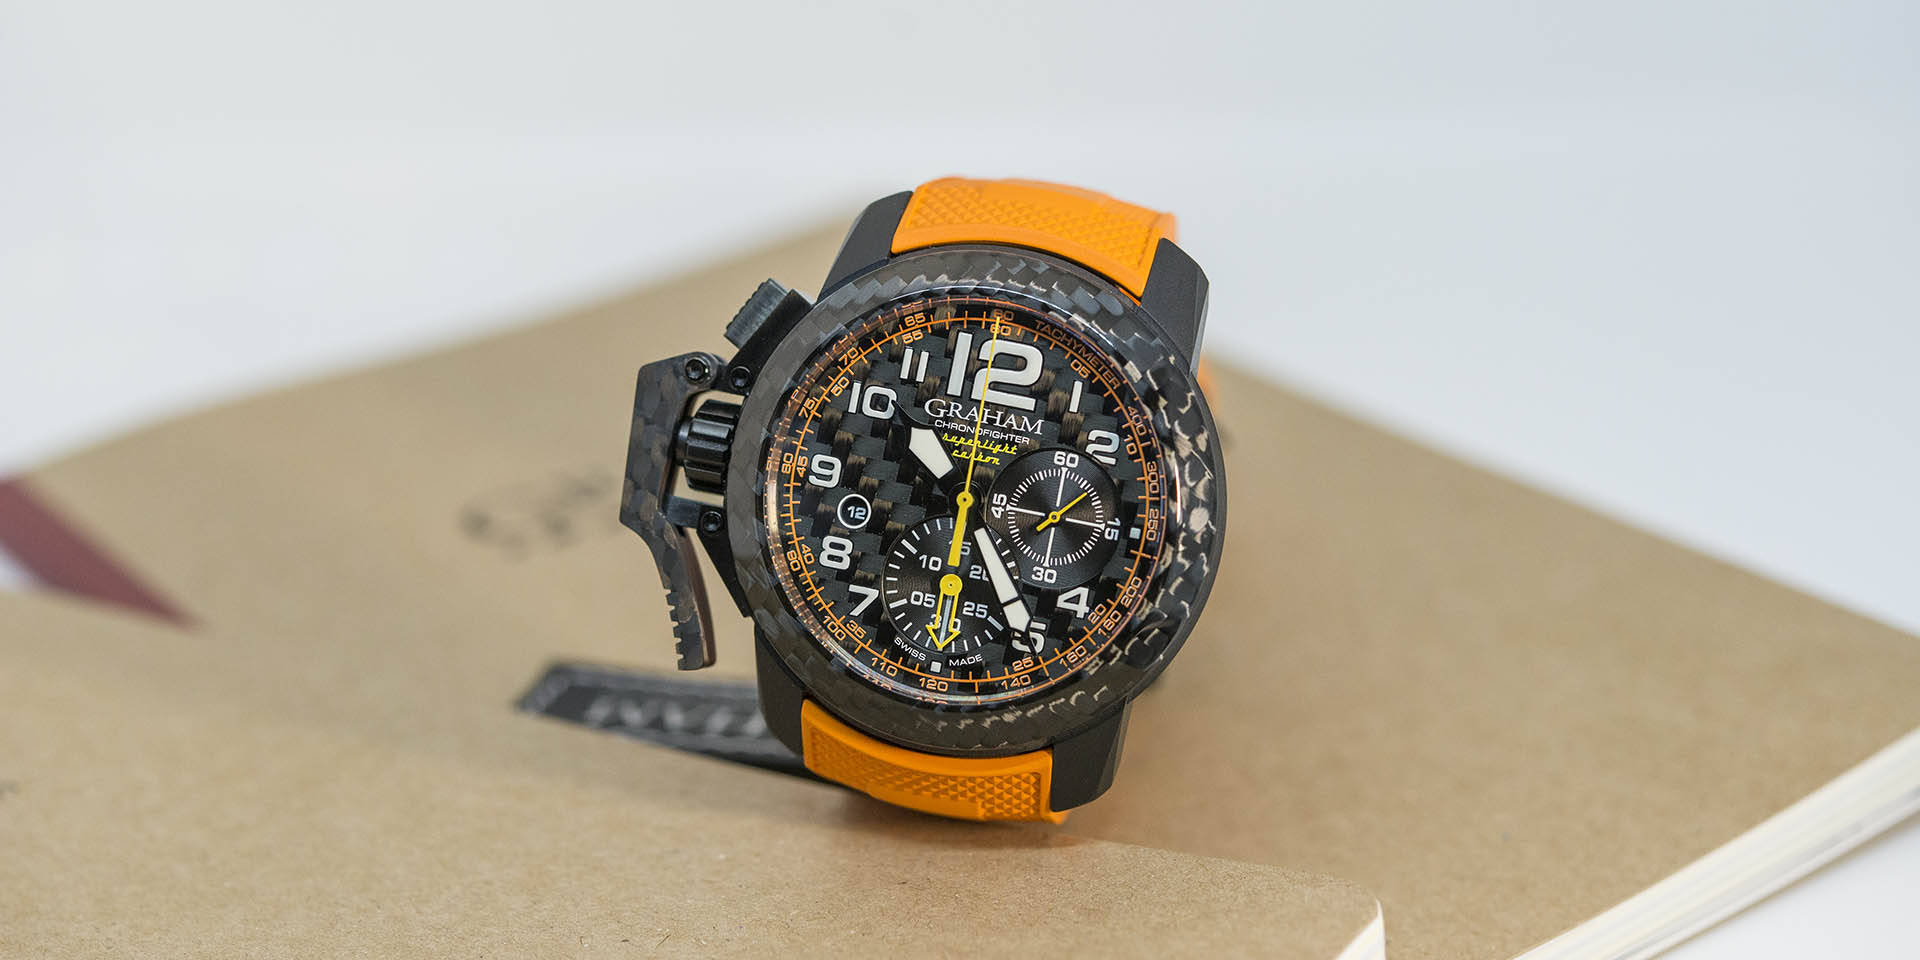 Graham-Chronofighter-Superlight-Carbon-4.jpg